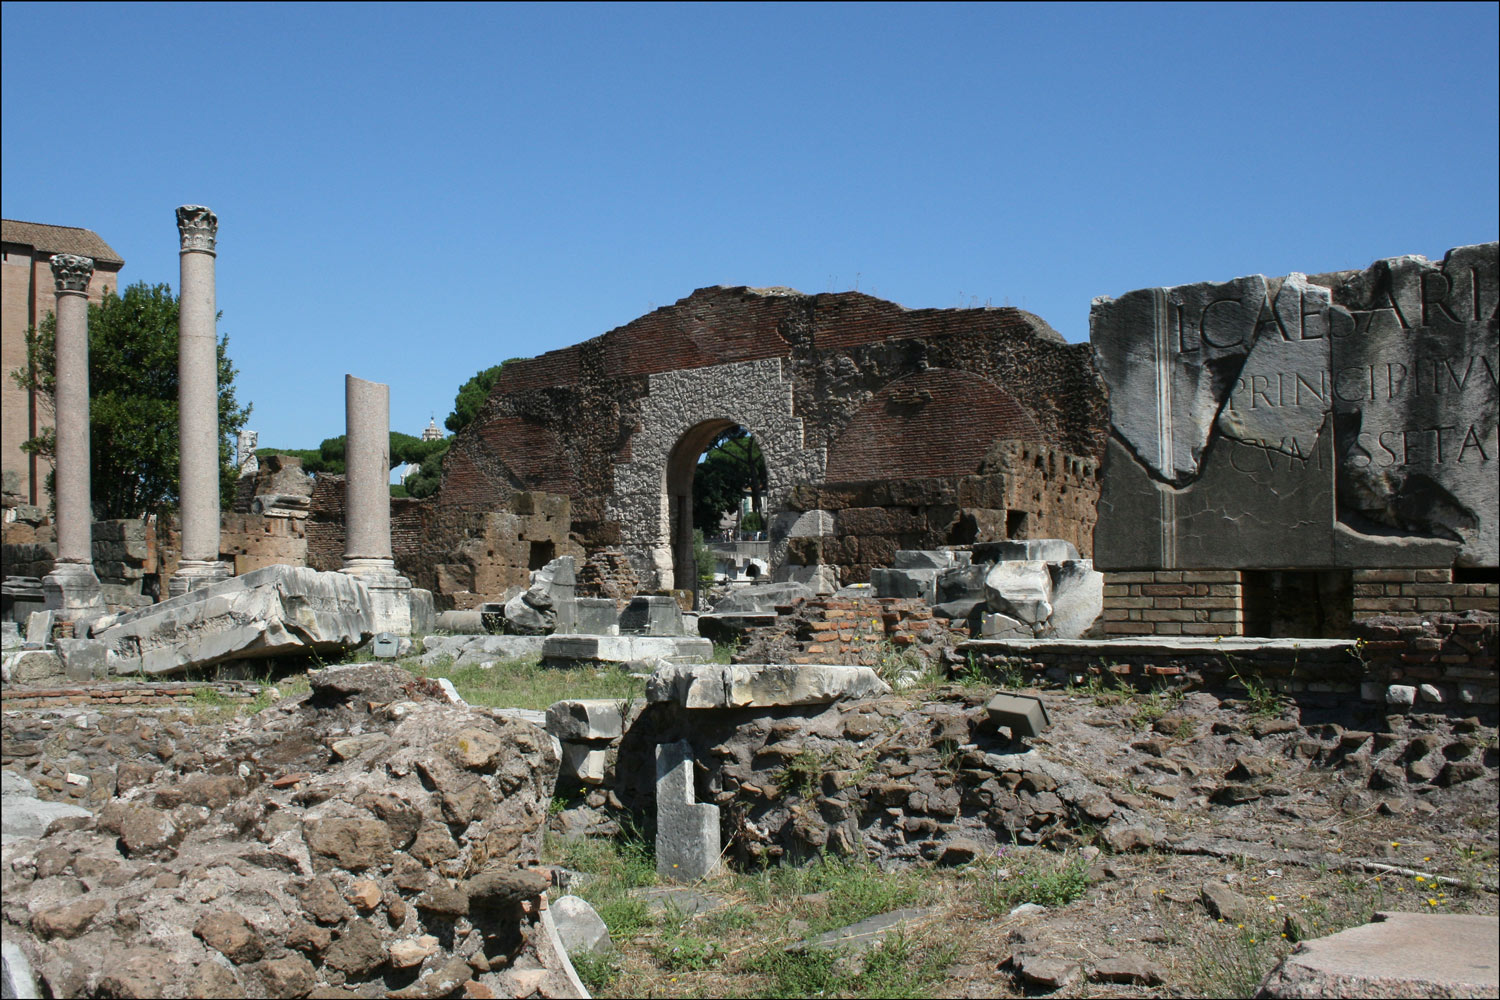 Remnants of the Basilica Aemilia